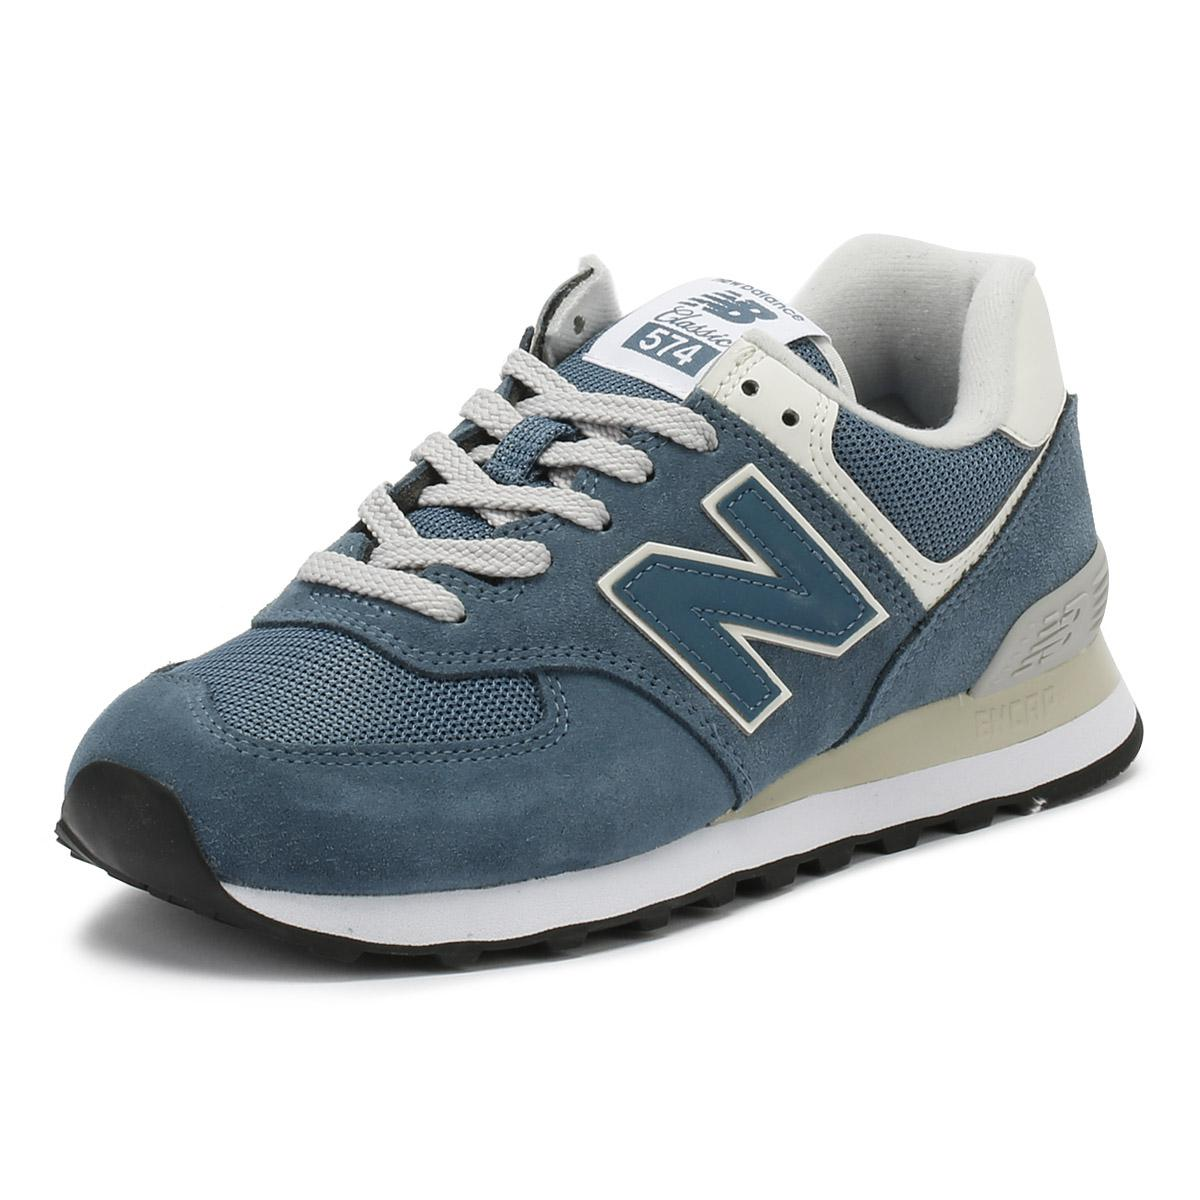 revendeur 8c8aa f5e27 coupon code for womens new balance 574 blue france 4886b d370b